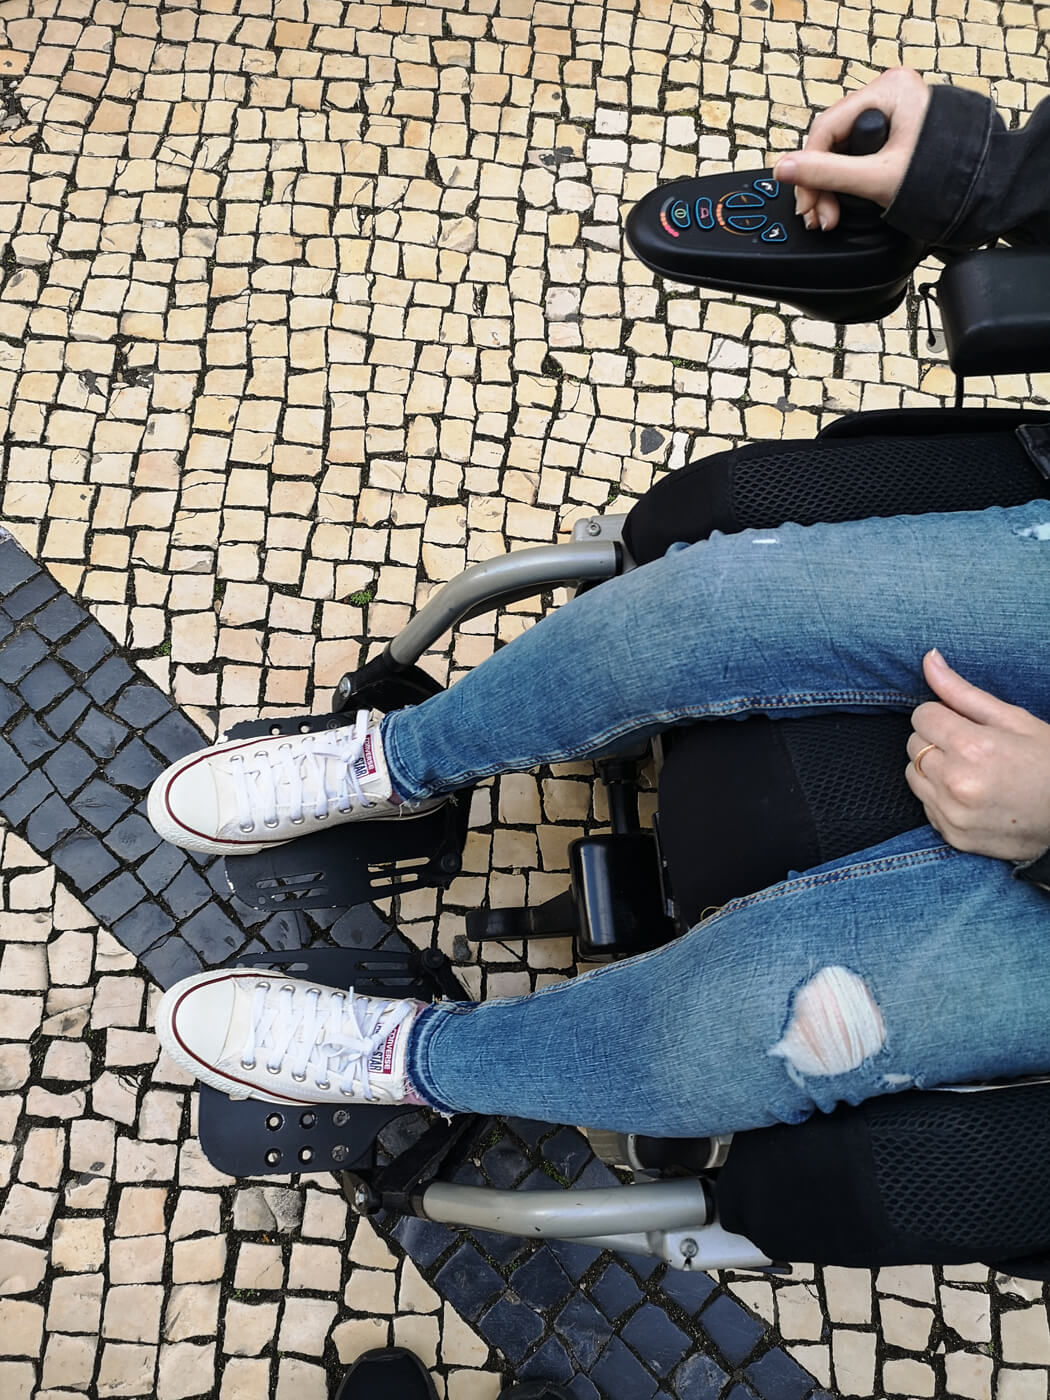 A view looking down at Emma's legs in her wheelchair and the tiled ground.